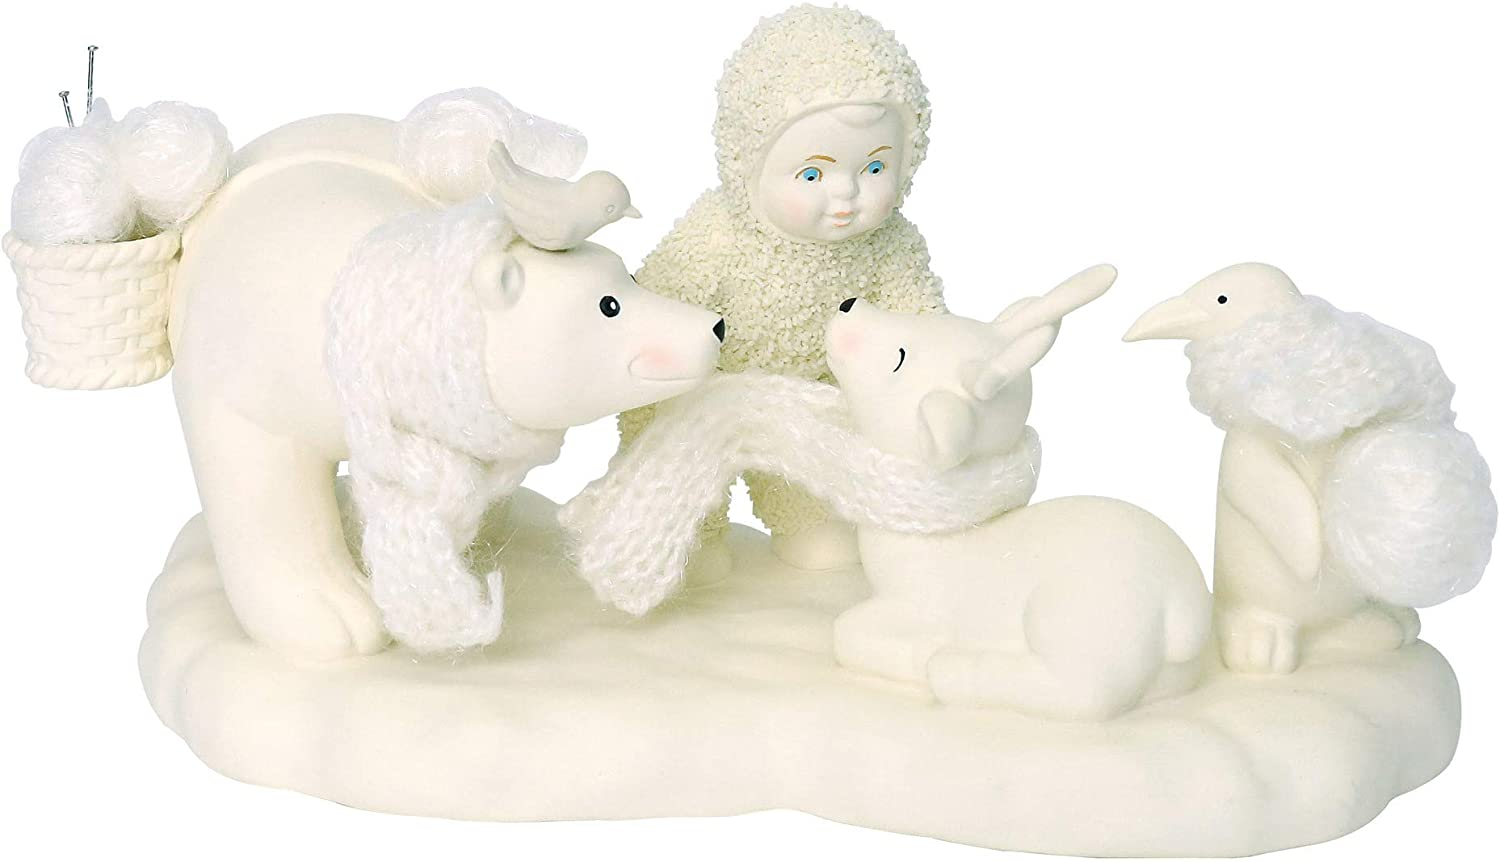 """Department 56 Snowbabies Peace Collection """"Wrapped in Warmth"""" Porcelain Figurine, 3.75"""""""